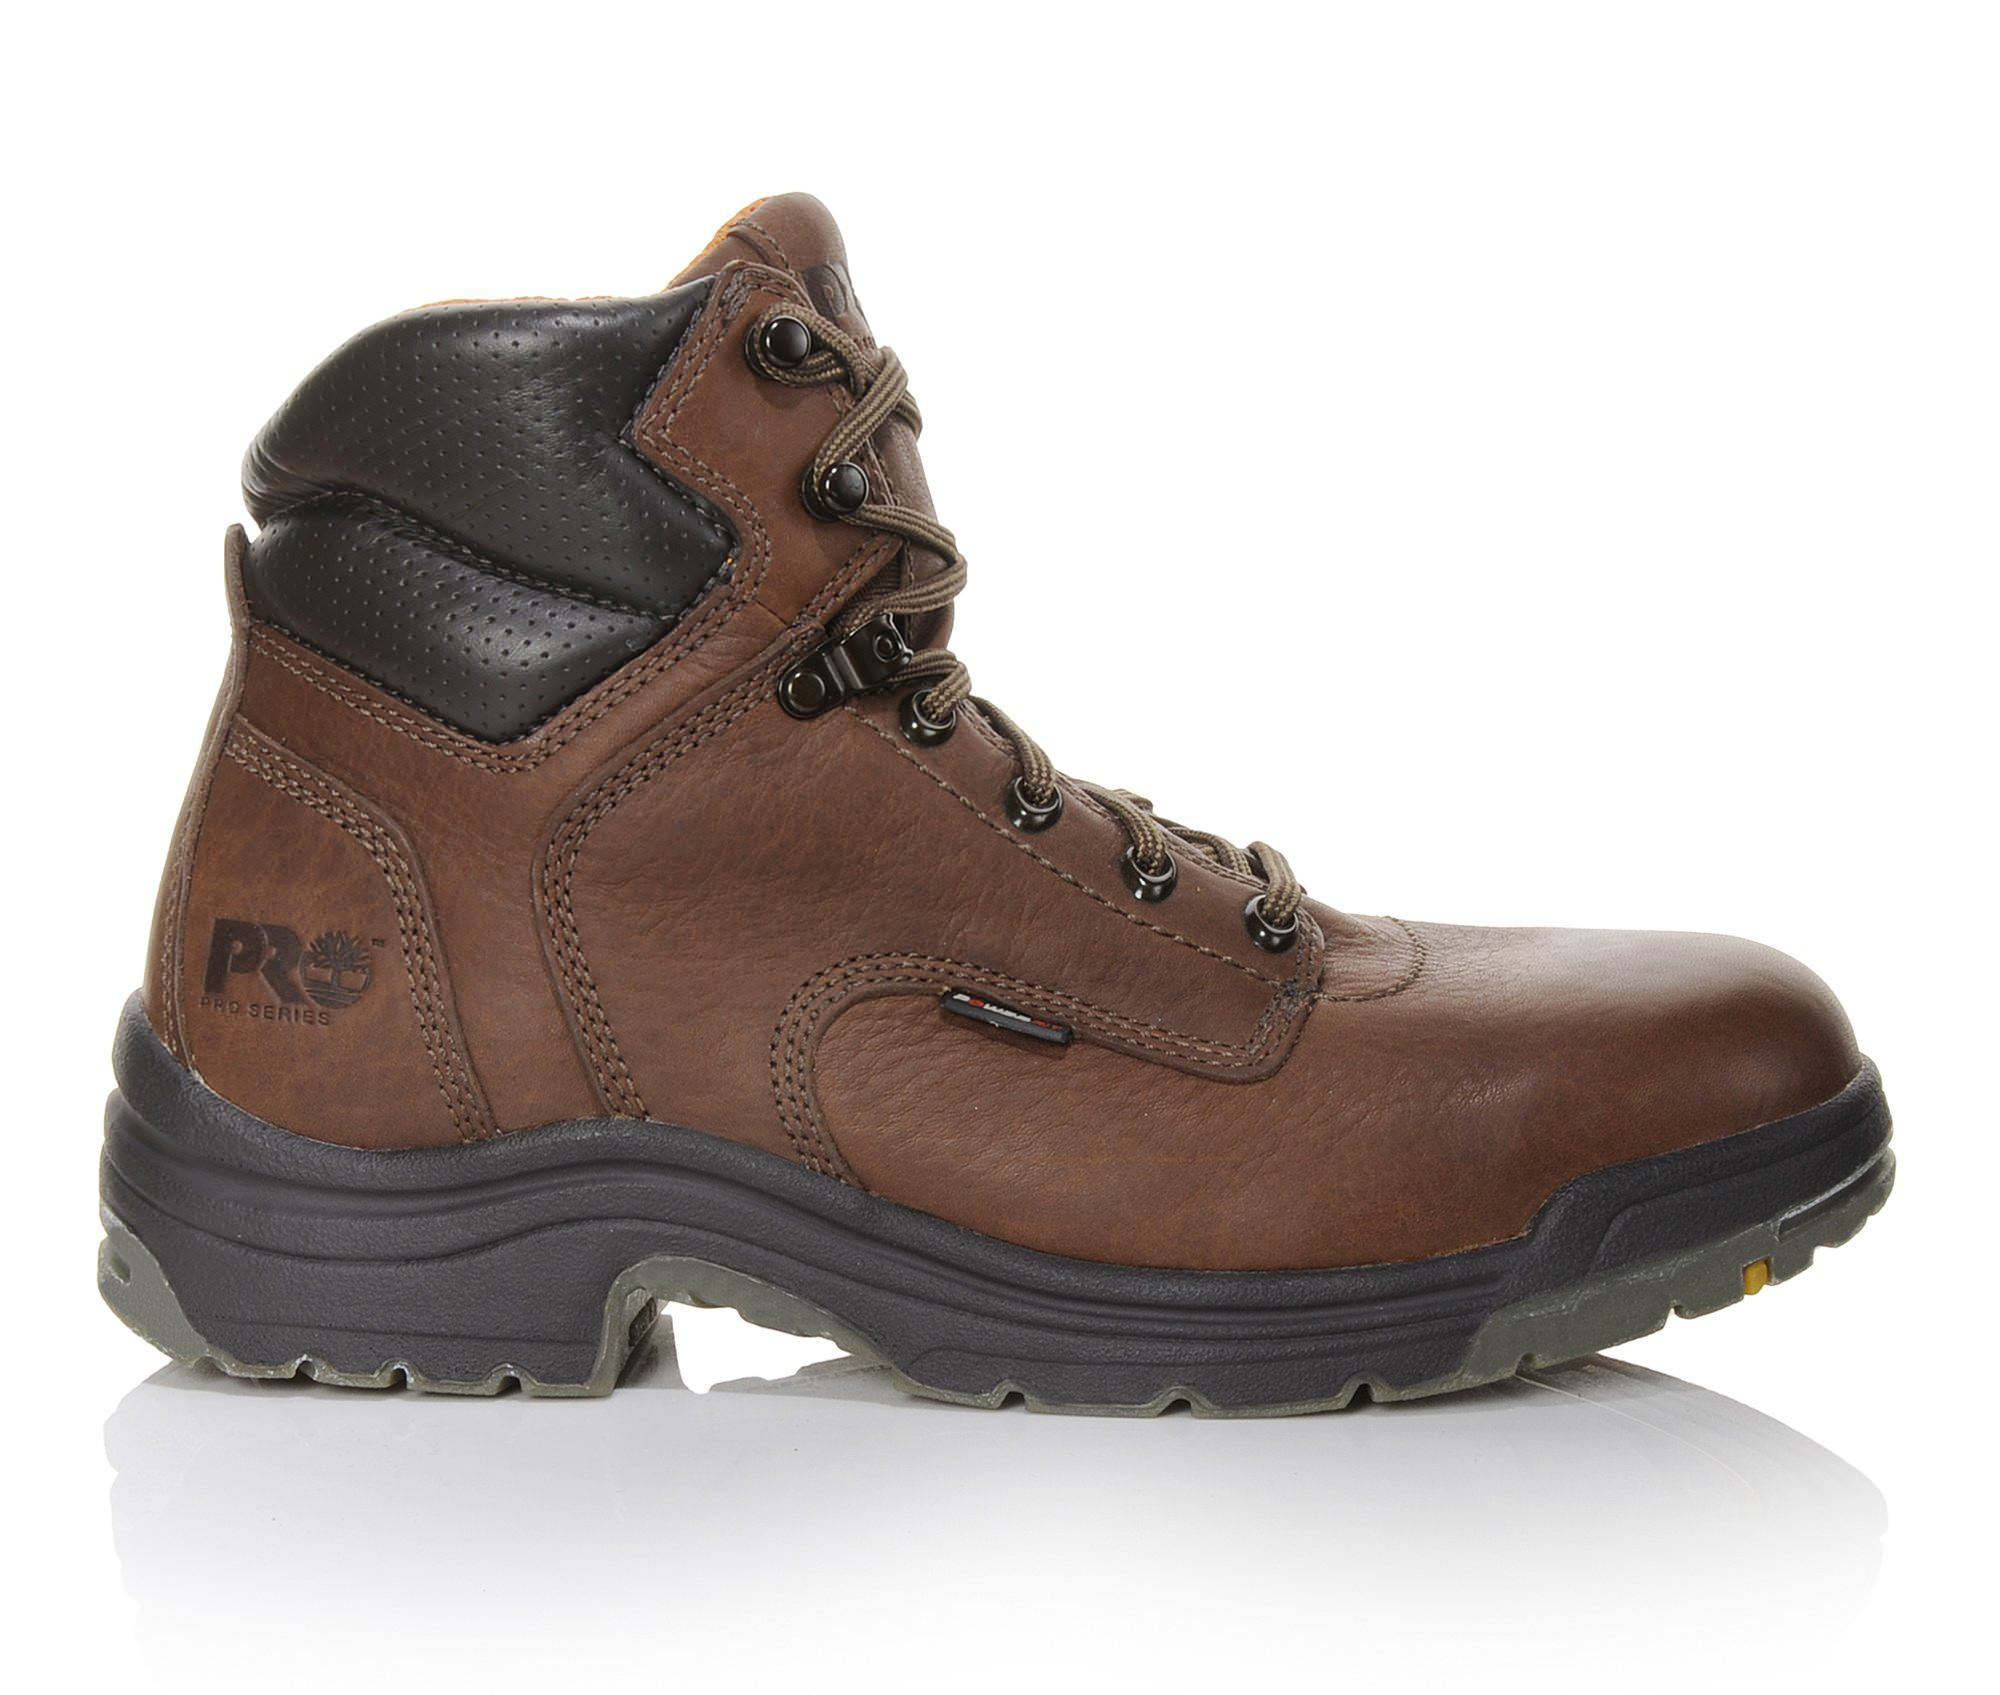 Timberland Pro Titan 6 Inch 24097 Men's Boots (Brown Leather)